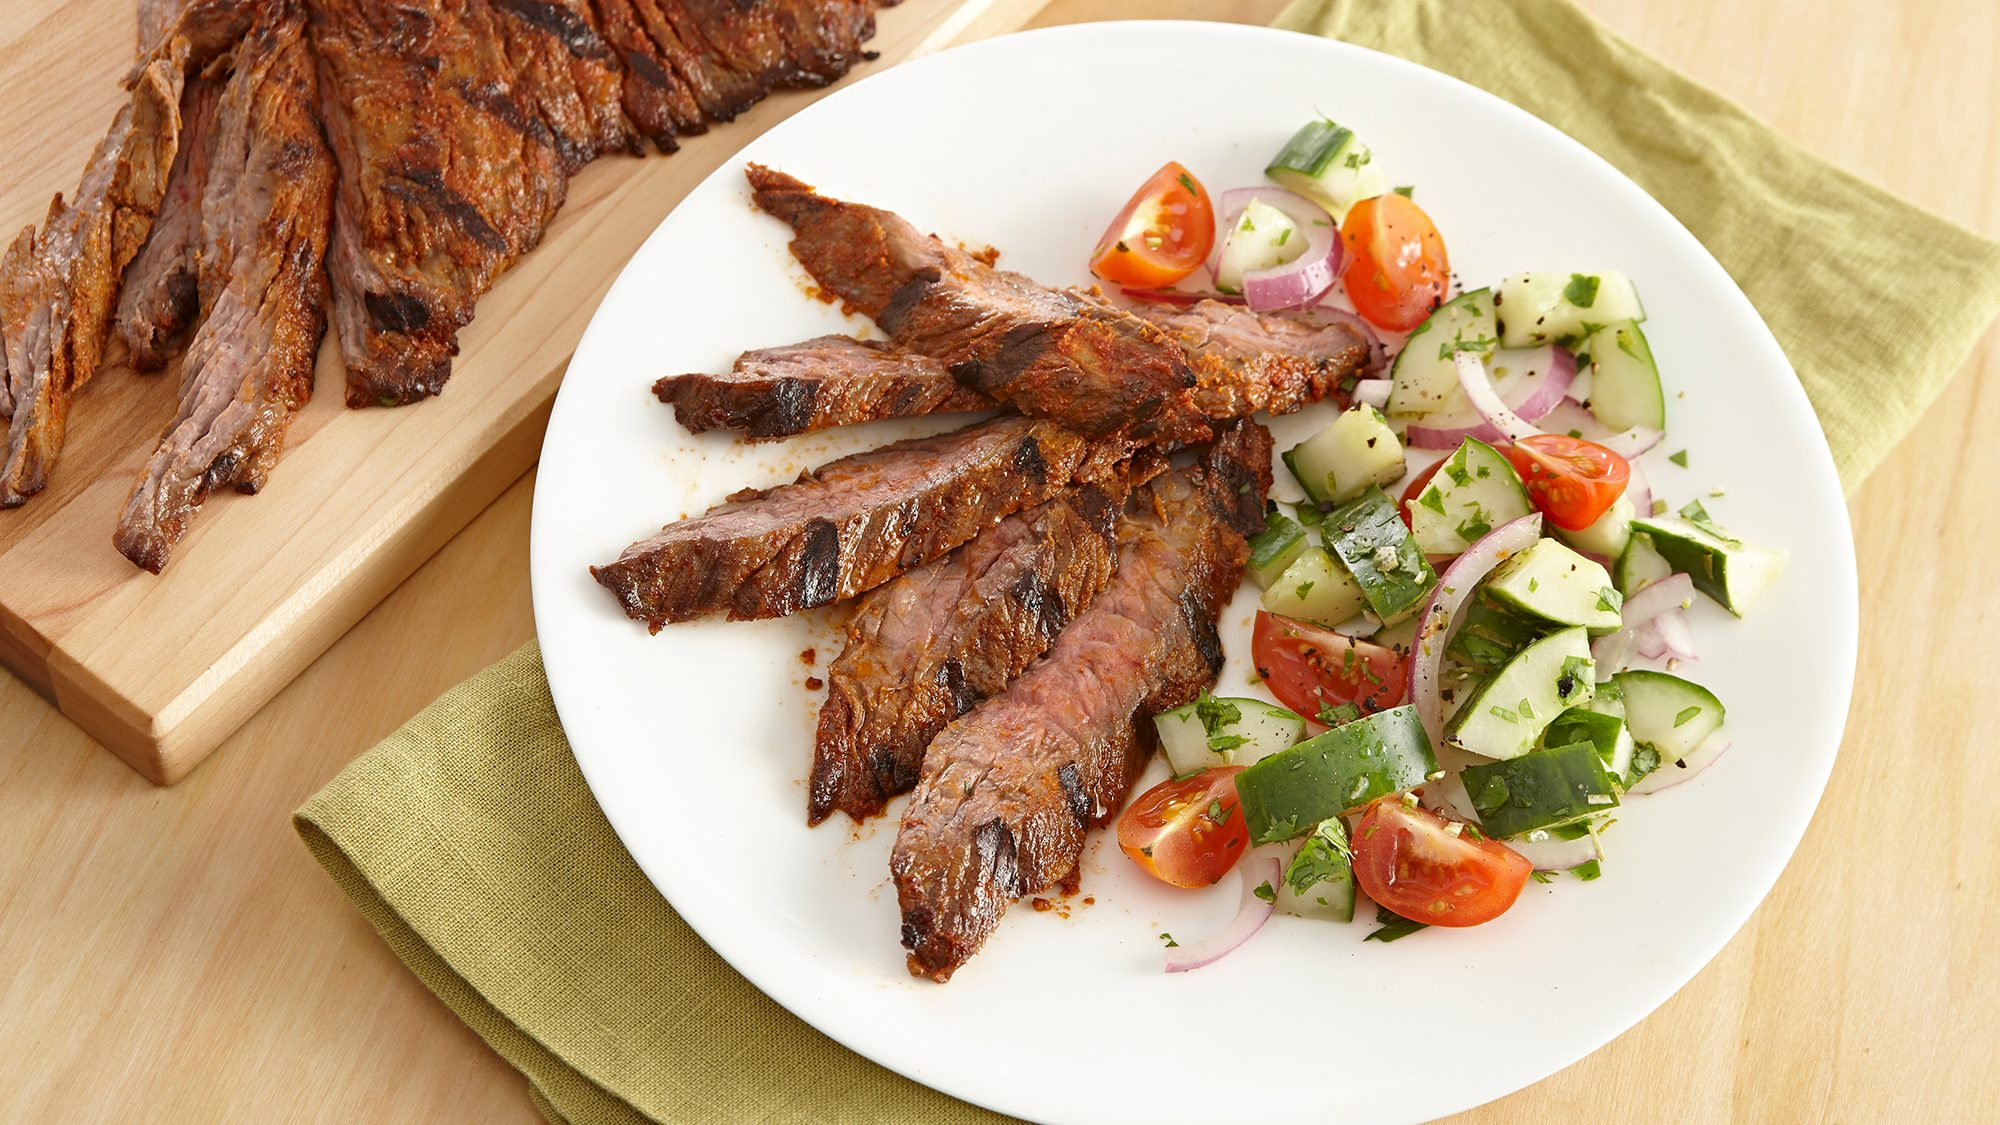 smoked-paprika-steak-with-tomato-and-cucumber-salad.jpg